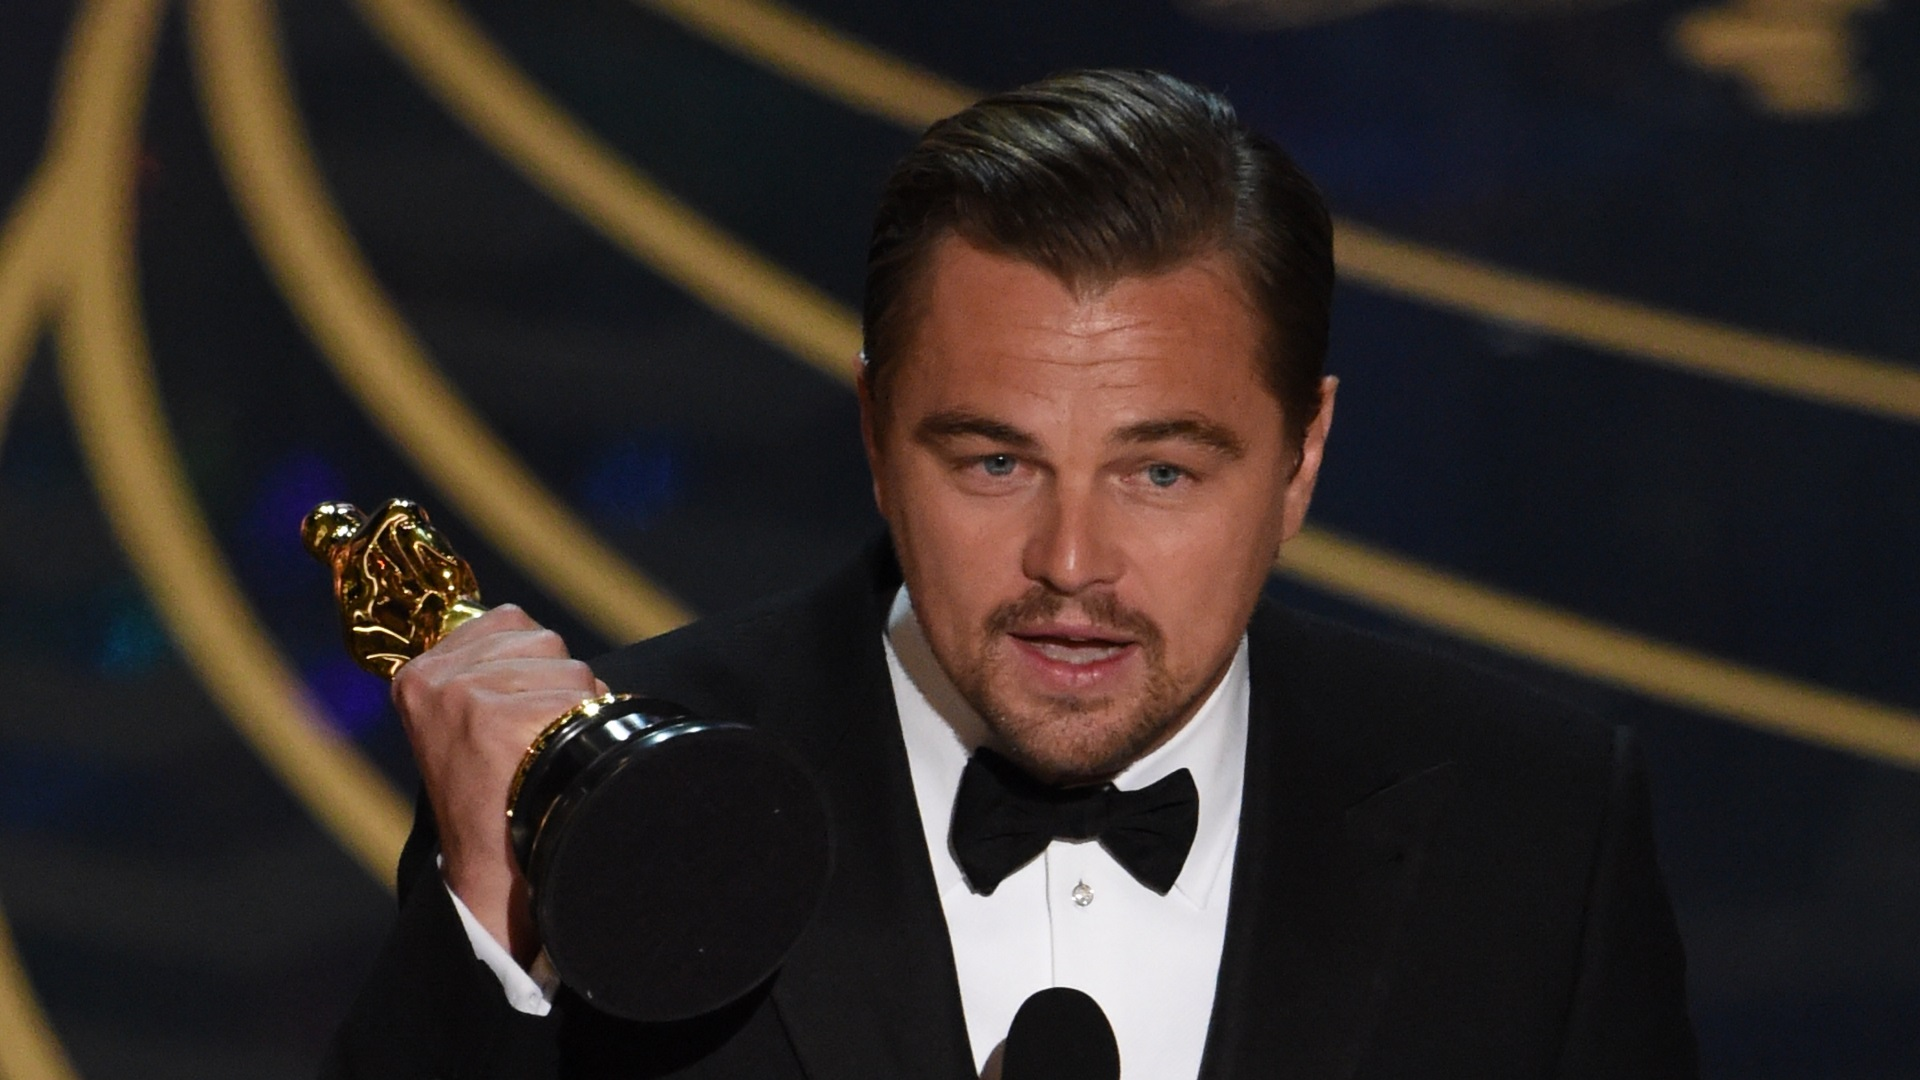 Actor Leonardo DiCaprio accepts the award for Best Actor in,The Revenant on stage at the 88th Oscars on February 28, 2016 in Hollywood, California. AFP PHOTO / MARK RALSTON / AFP / MARK RALSTON (Photo credit should read MARK RALSTON/AFP/Getty Images)